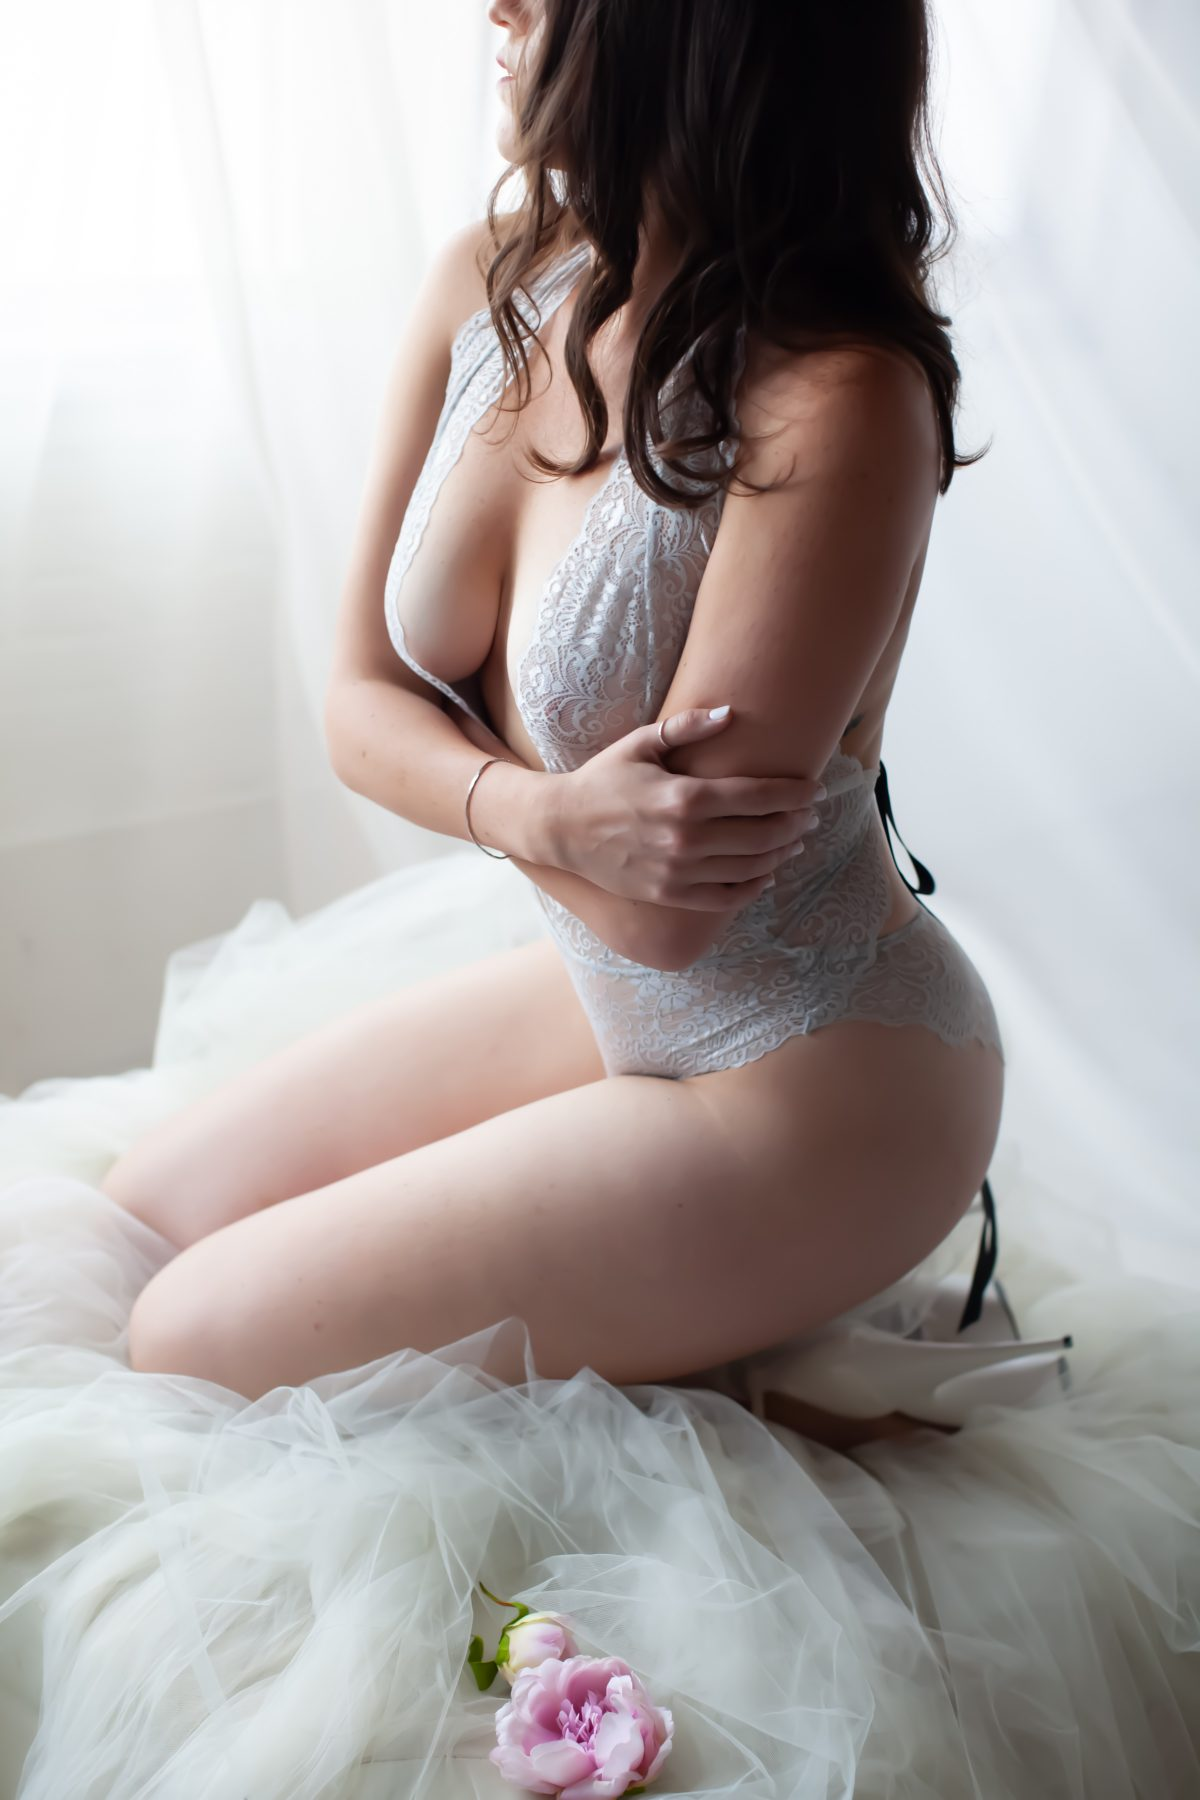 Cupid escorts